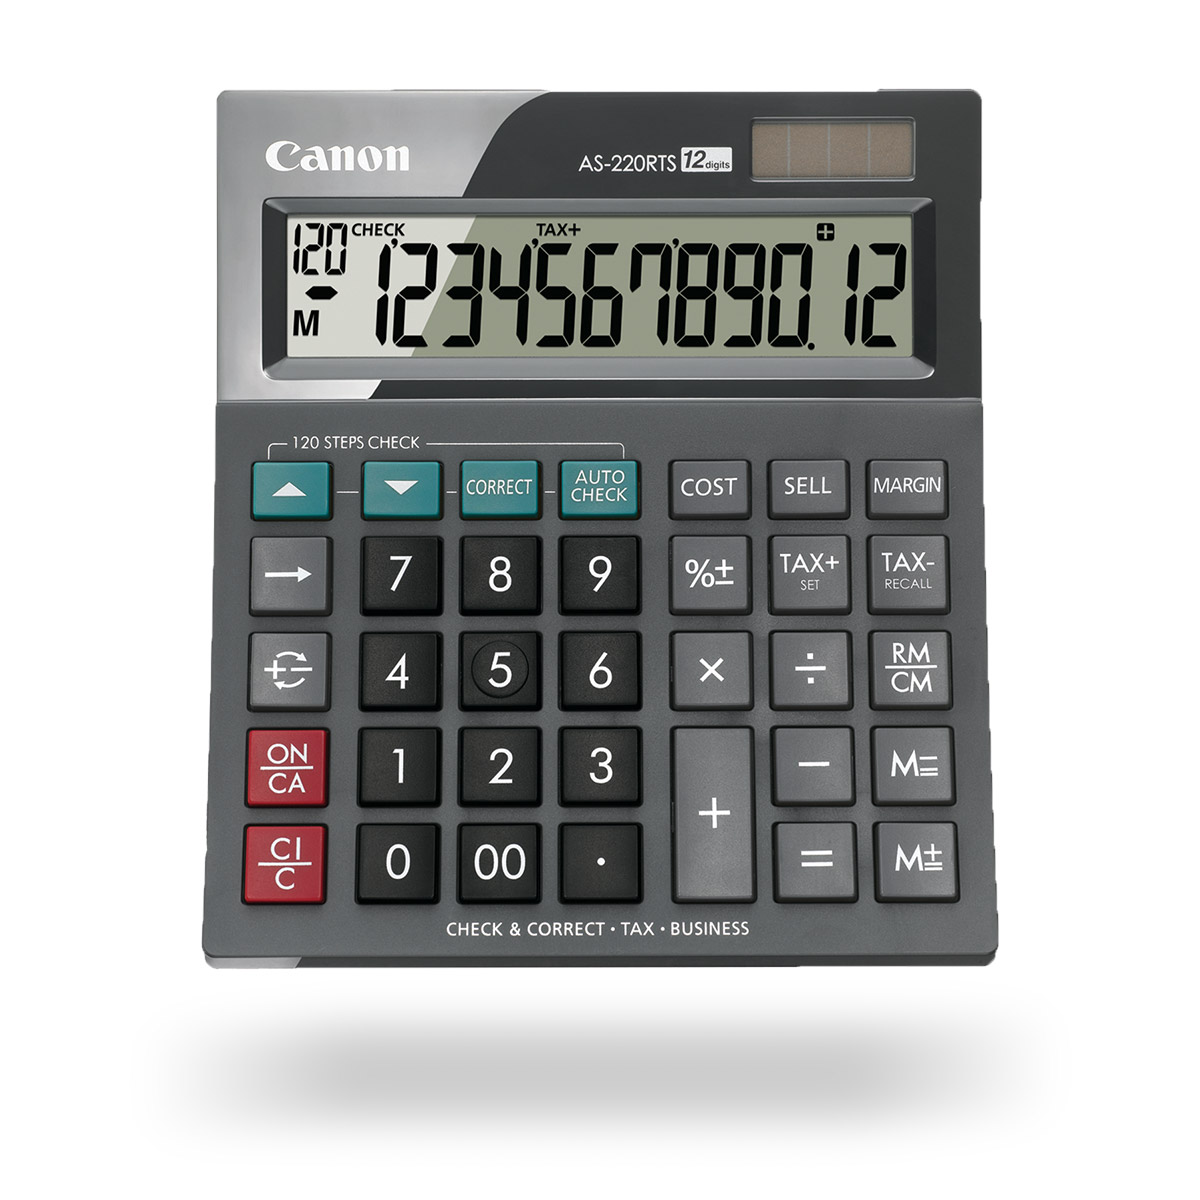 Canon AS-220RTS large desktop calculator